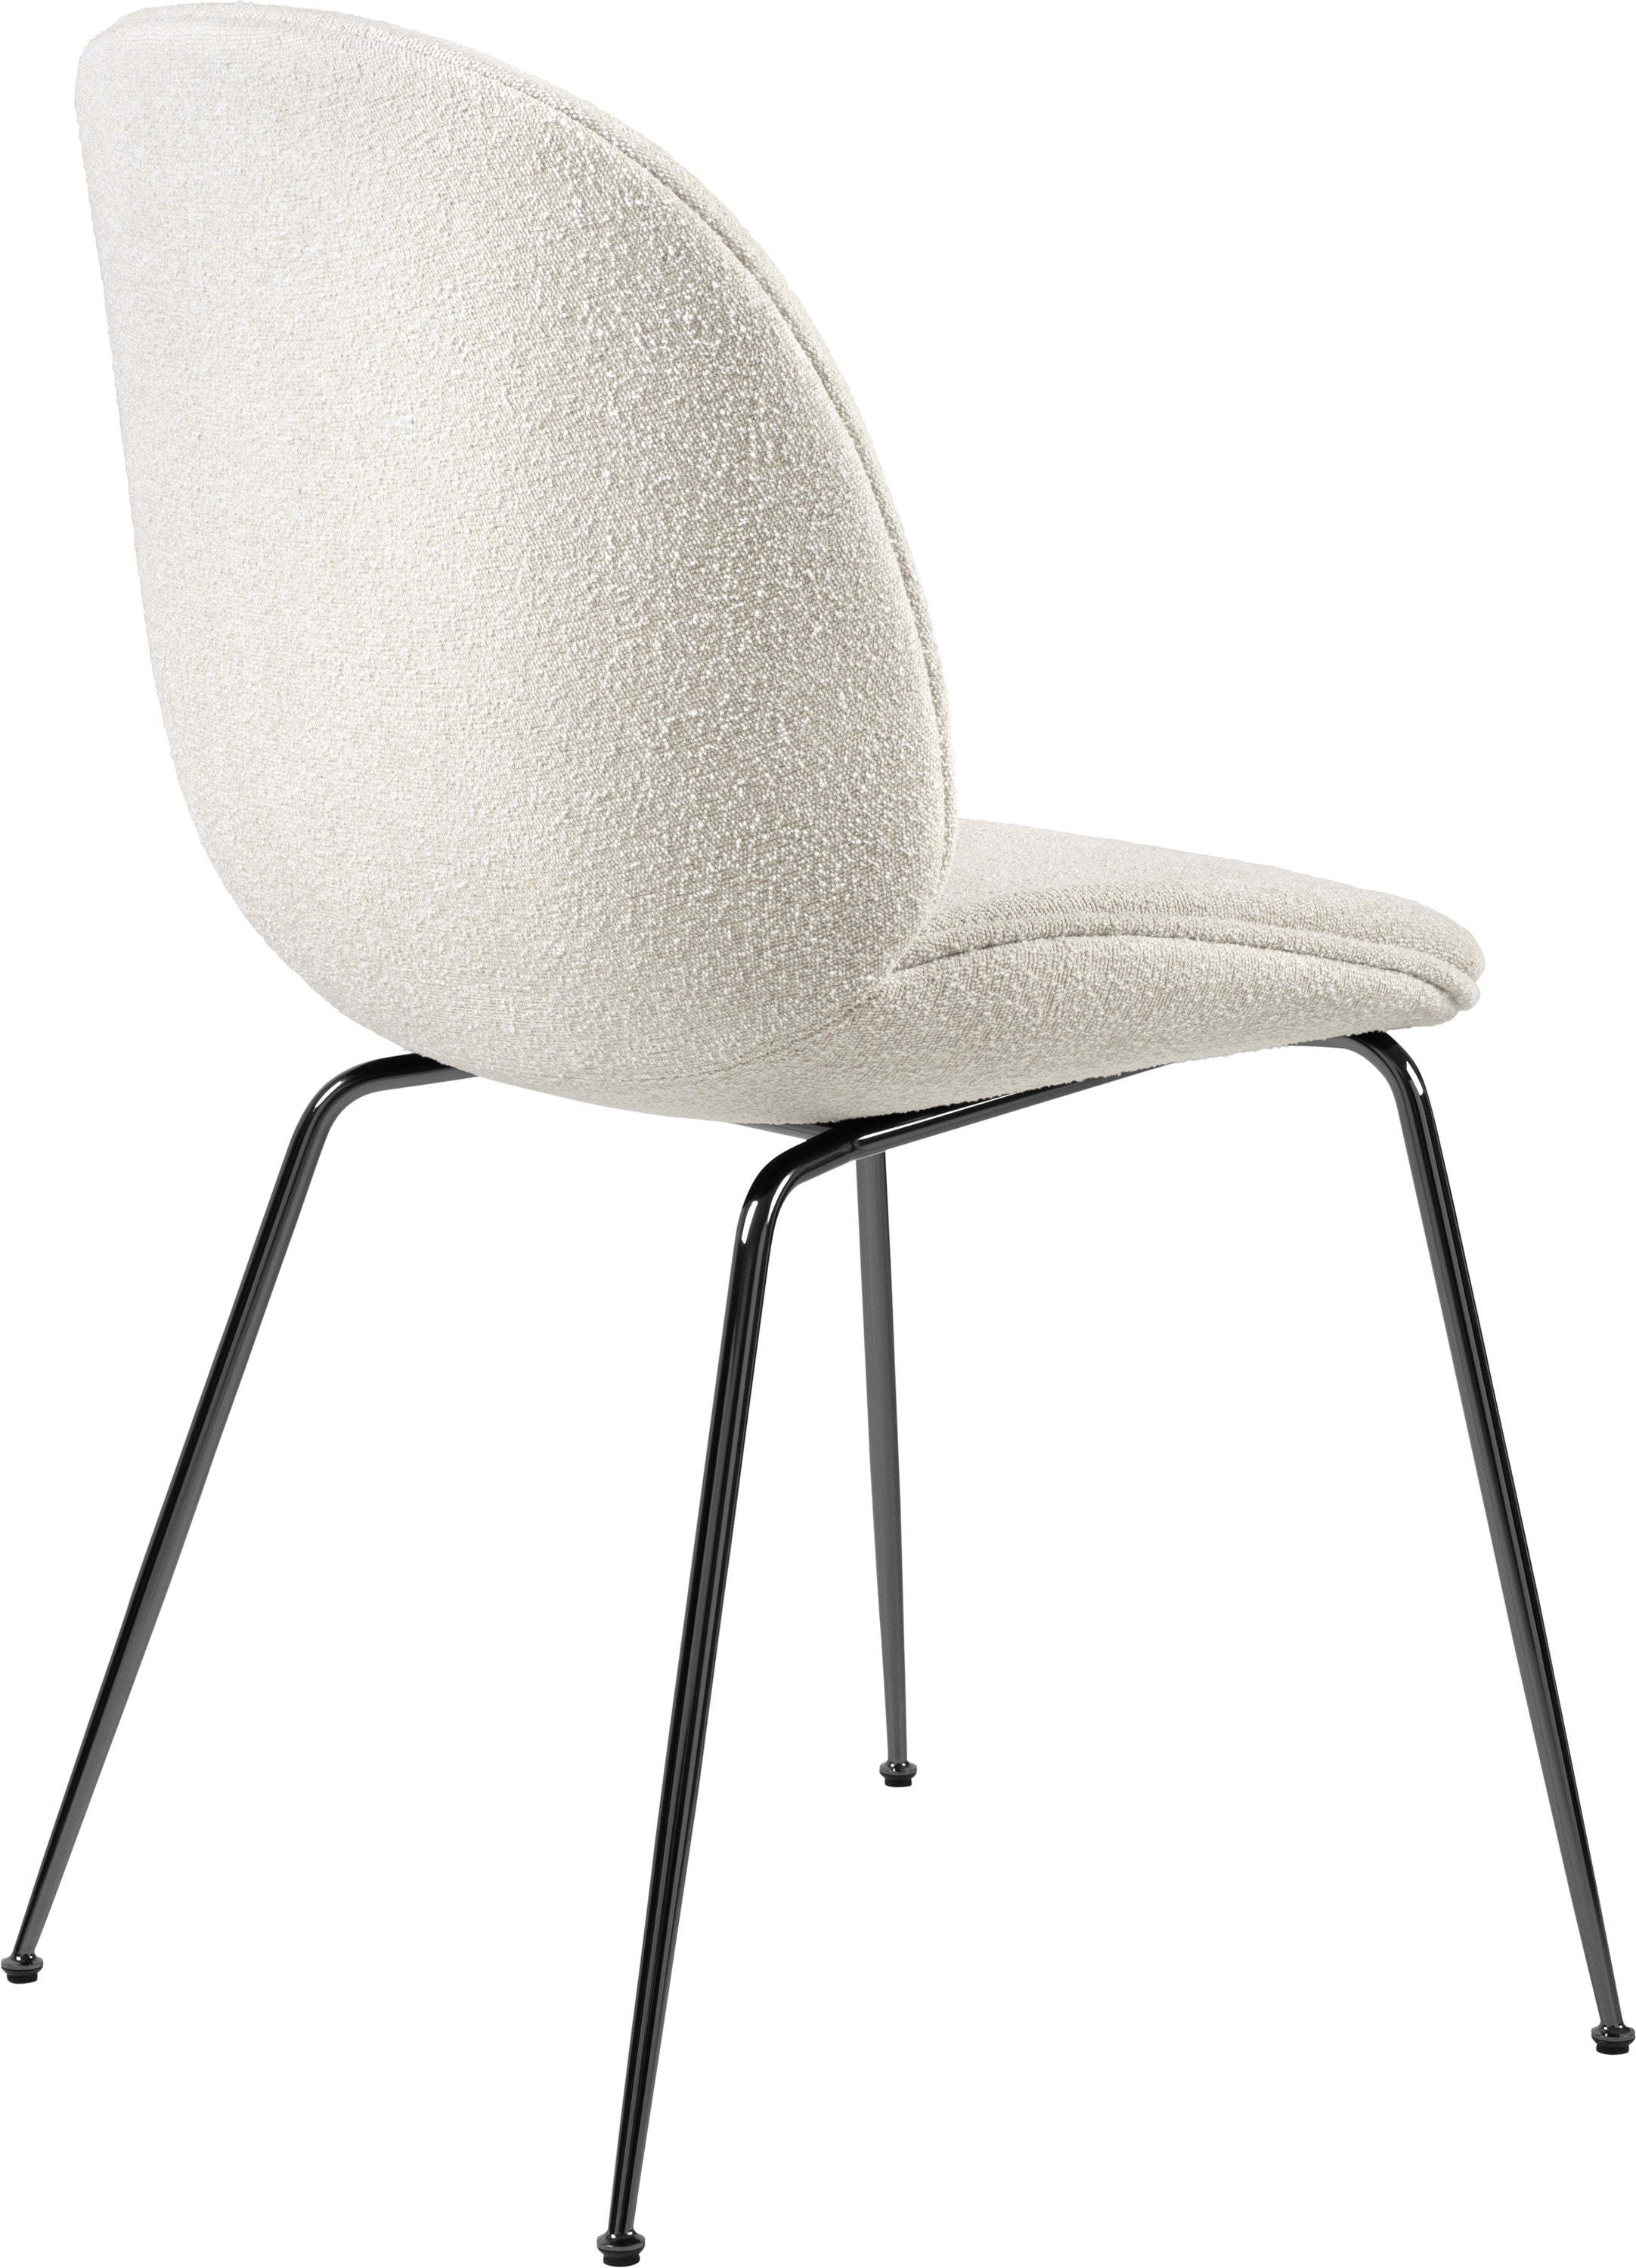 Beetle Dining Chair (Fully), Black Chrome, Grp 02, Light Bouclé, GUBI (001) fra GUBI